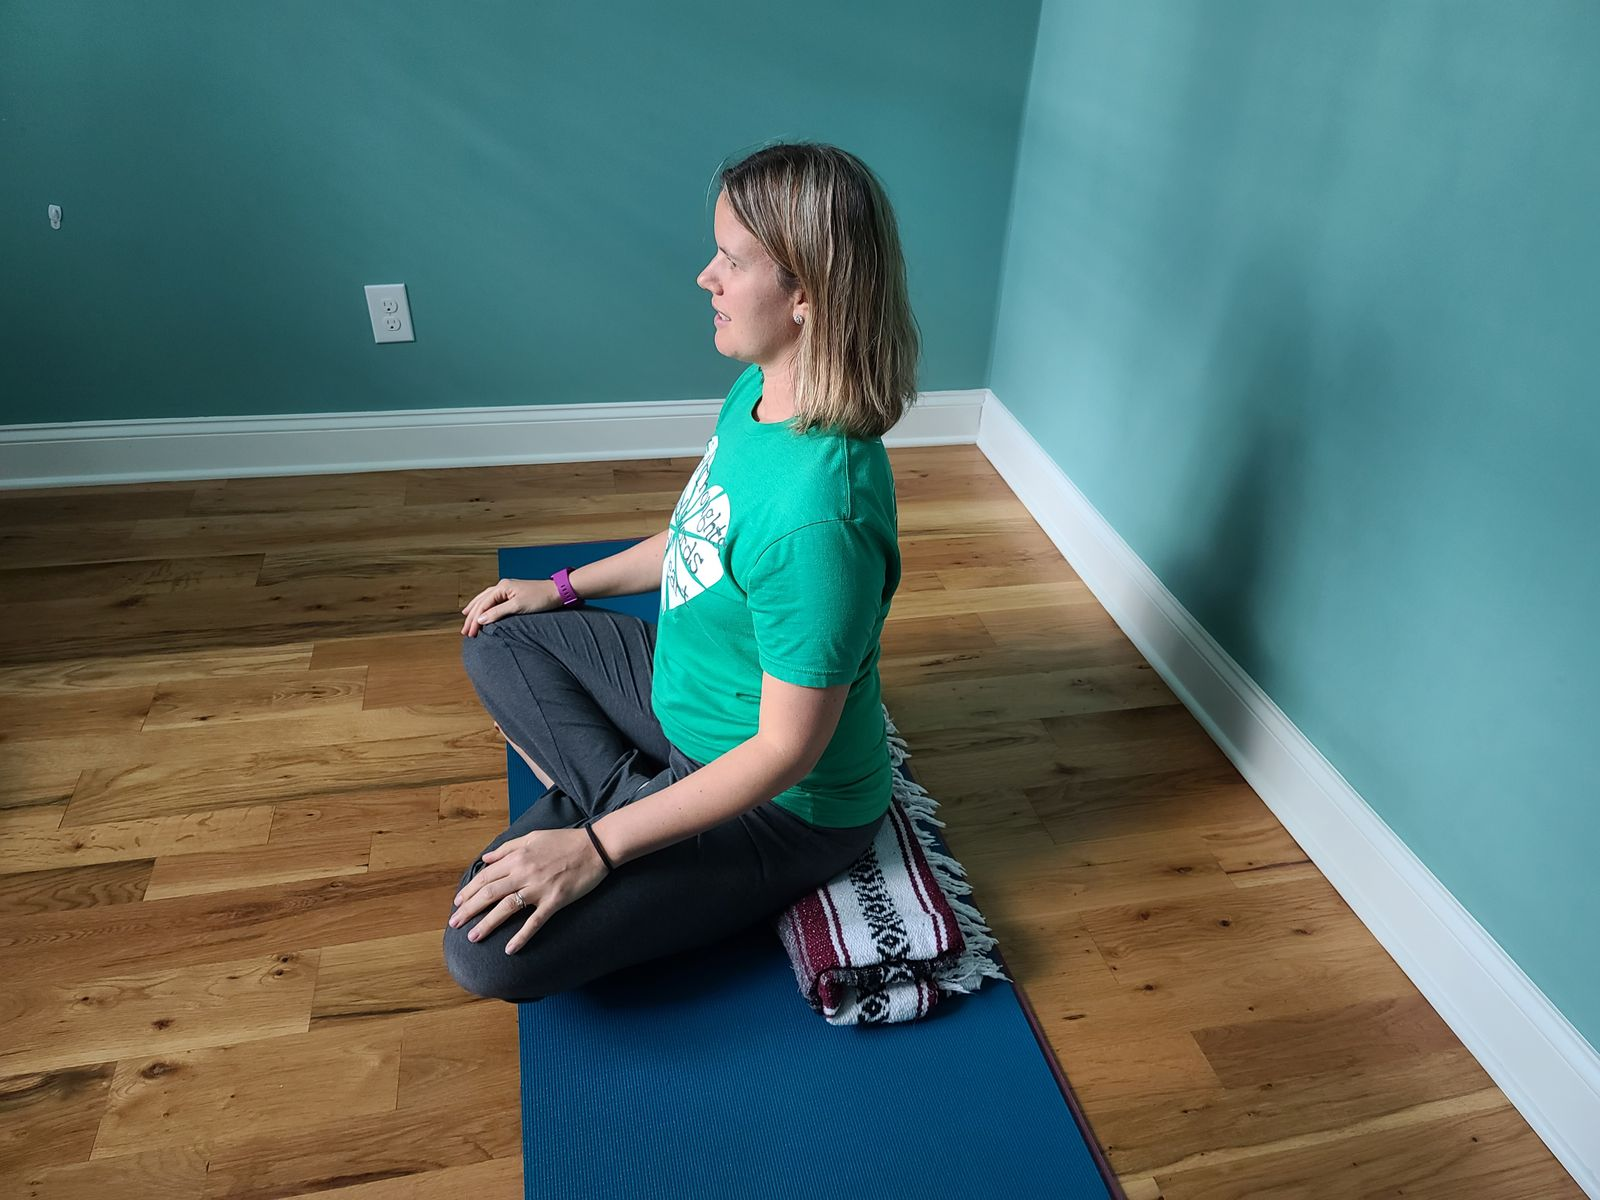 Seated under the hips to lift the hips and support your posture